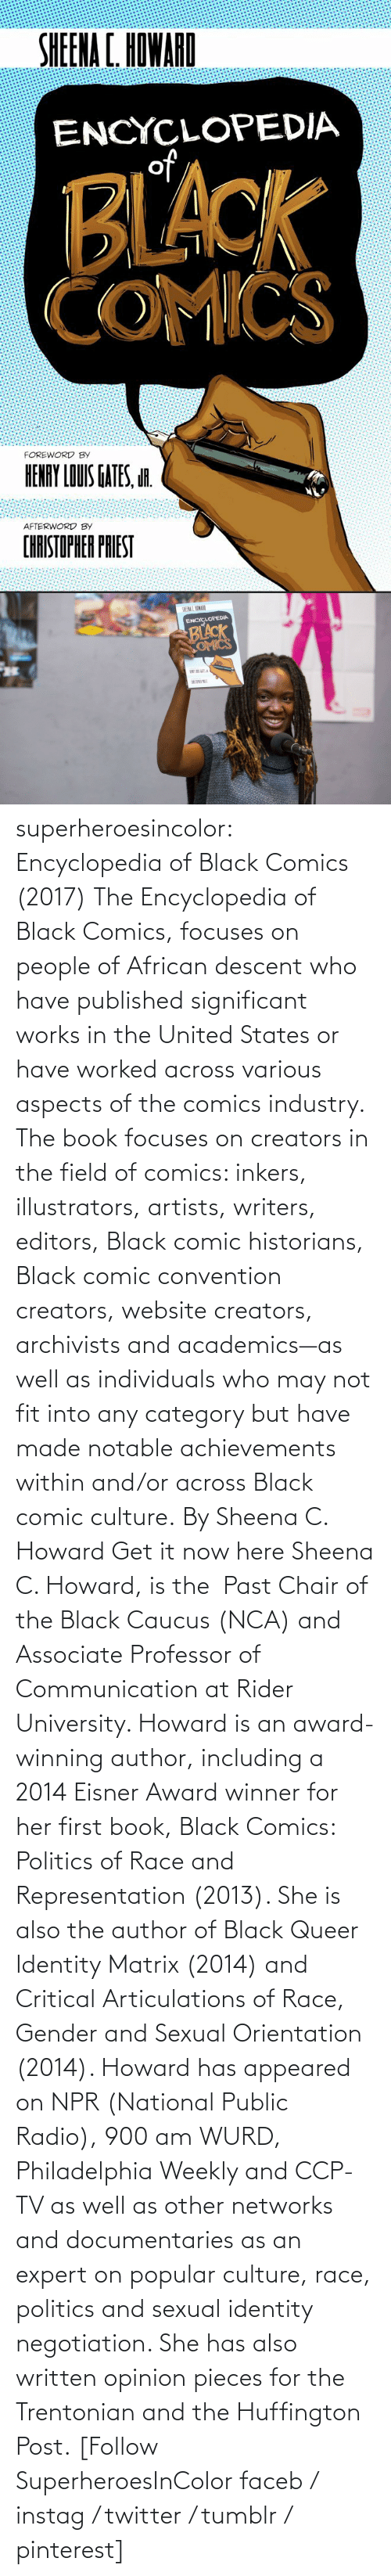 amp: superheroesincolor: Encyclopedia of Black Comics (2017) The Encyclopedia of Black Comics, focuses on people of African descent who have published significant works in the United States or have worked across various aspects of the comics industry.  The book focuses on creators in the field of comics: inkers, illustrators, artists, writers, editors, Black comic historians, Black comic convention creators, website creators, archivists and academics—as well as individuals who may not fit into any category but have made notable achievements within and/or across Black comic culture. By Sheena C. Howard Get it now here  Sheena C. Howard, is the  Past Chair of the Black Caucus (NCA) and Associate Professor of Communication at Rider University. Howard is an award-winning author, including a 2014 Eisner Award winner for her first book, Black Comics: Politics of Race and Representation (2013). She is also the author of Black Queer Identity Matrix (2014) and Critical Articulations of Race, Gender and Sexual Orientation (2014). Howard has appeared on NPR (National Public Radio), 900 am WURD, Philadelphia Weekly and CCP-TV as well as other networks and documentaries as an expert on popular culture, race, politics and sexual identity negotiation. She has also written opinion pieces for the Trentonian and the Huffington Post.   [Follow SuperheroesInColor faceb / instag / twitter / tumblr / pinterest]